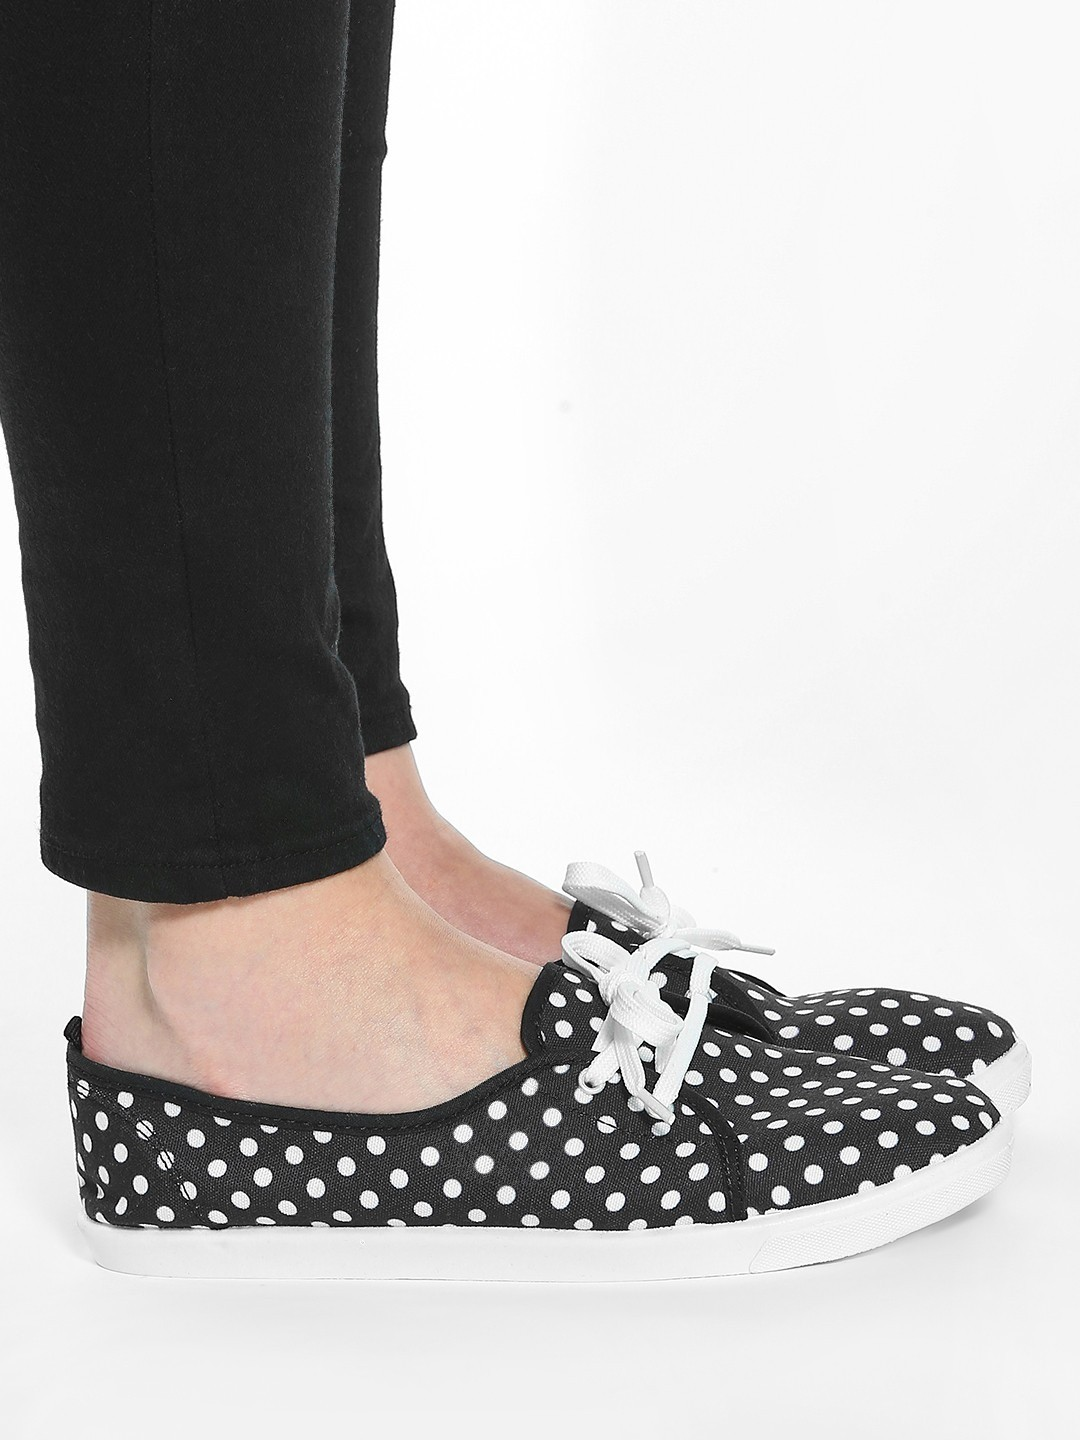 KOOVS Black Polka Dot Print Plimsoll Shoes 1